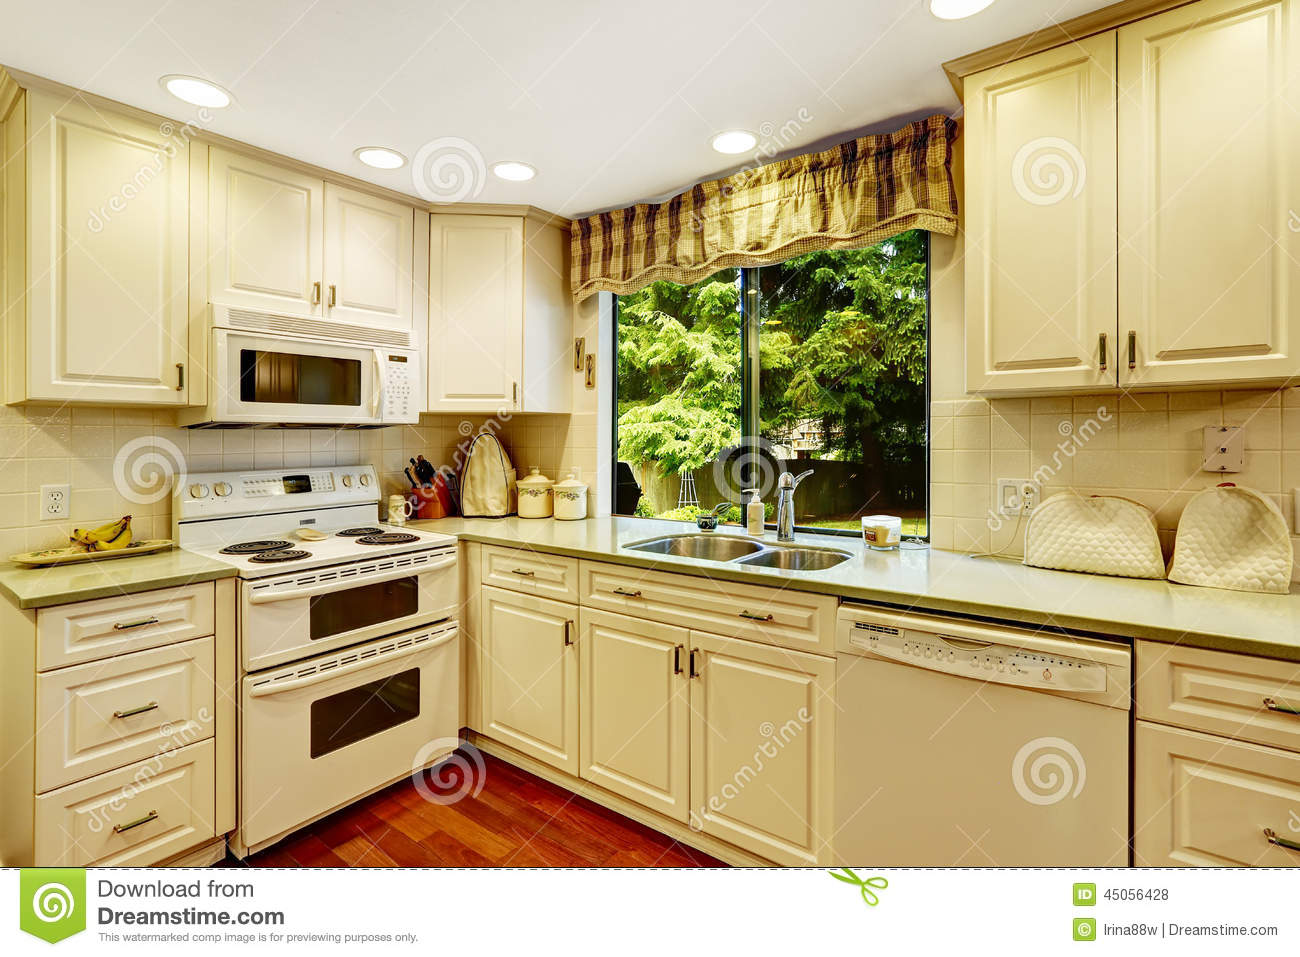 Interieur Simple De Cuisine Dans La Vieille Maison Photo Stock